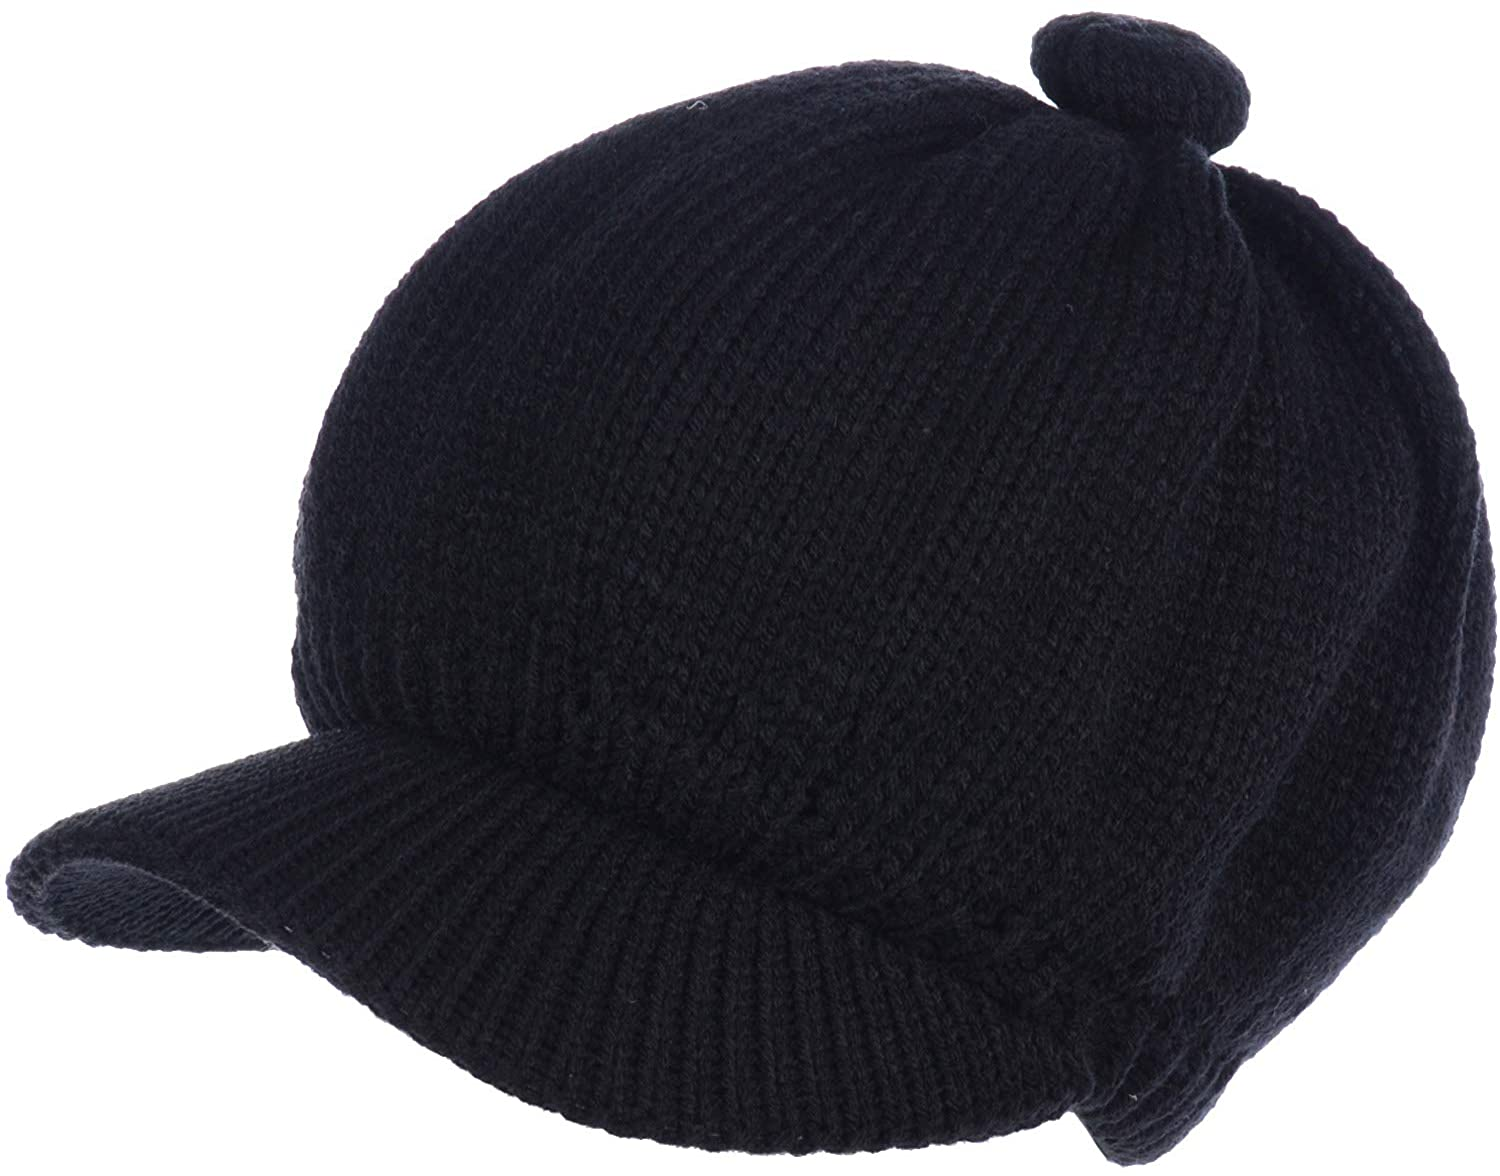 BYOS Womens Winter Cozy Fleece Lined Newsboy Knit Cap Cabbie Hat (Set Available)